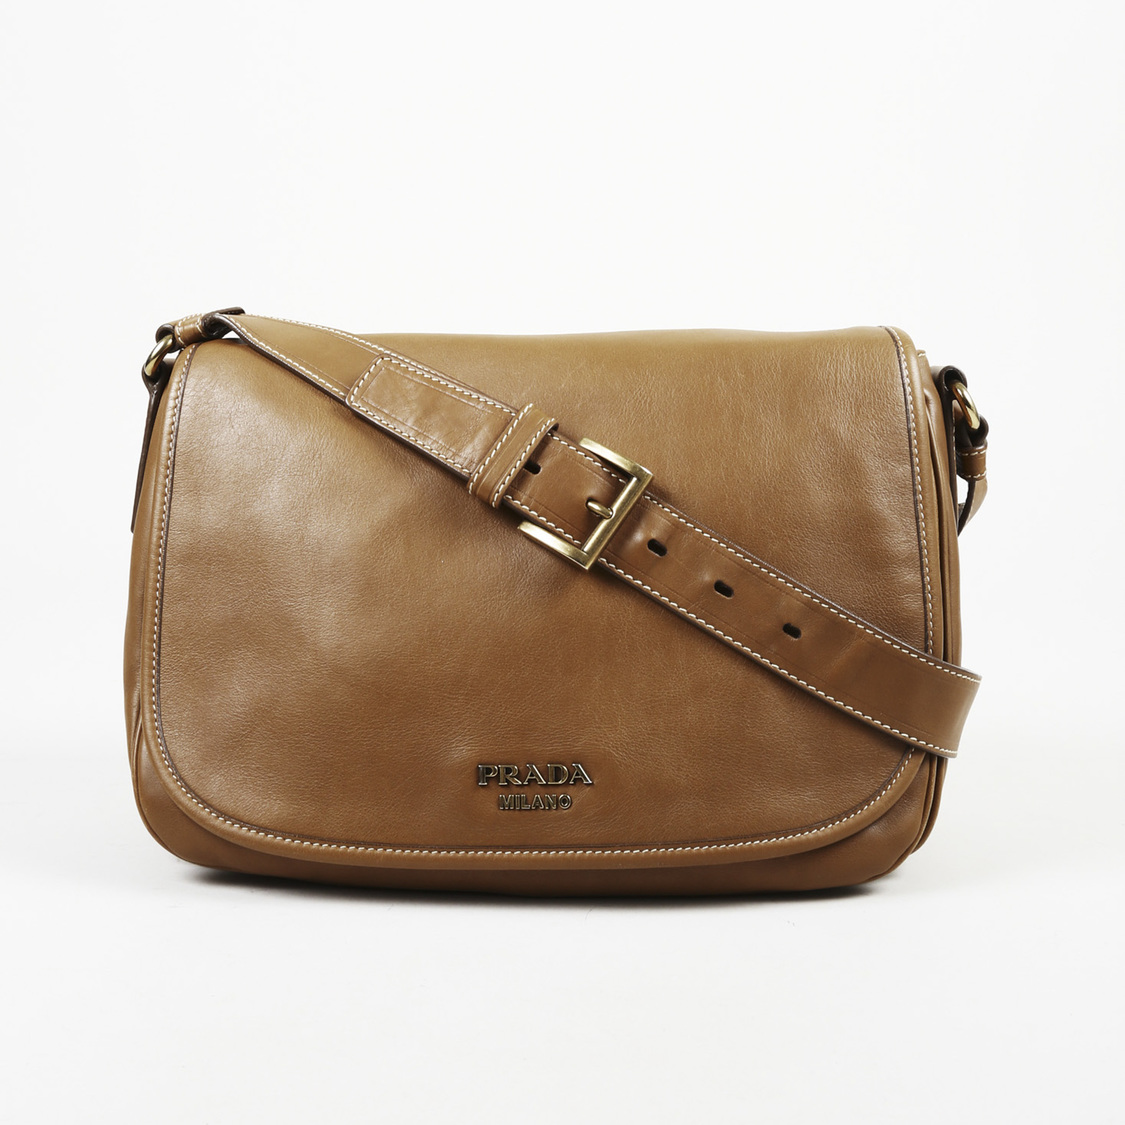 Details about Prada Brown Leather Crossbody Bag 6bd8855ae58d7